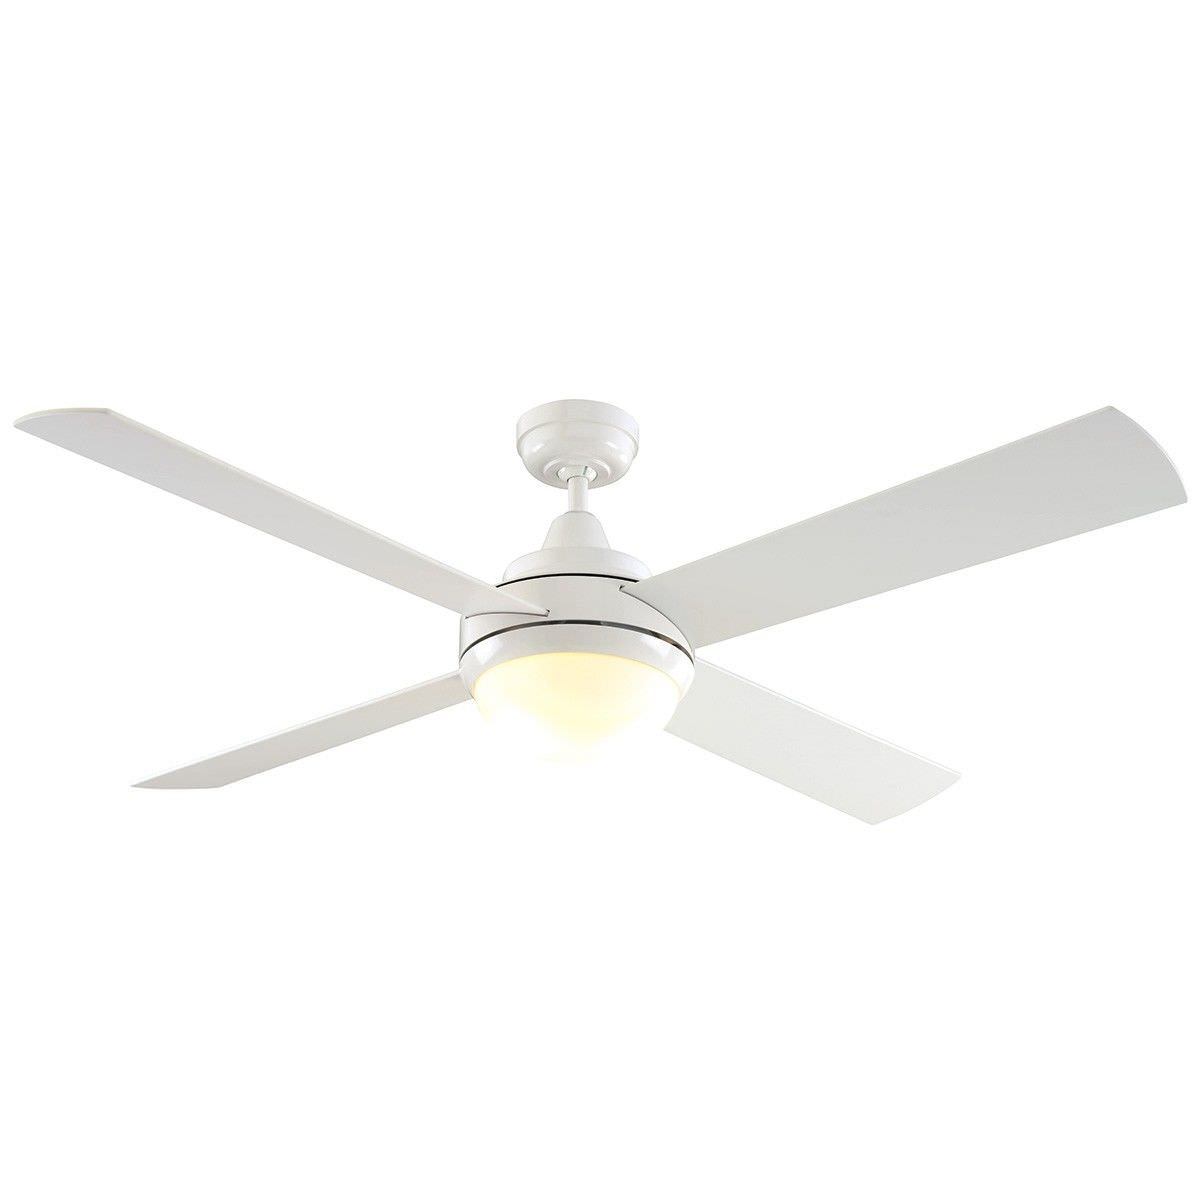 Ca Timber Dc Ceiling Fan With Light 130cm 52